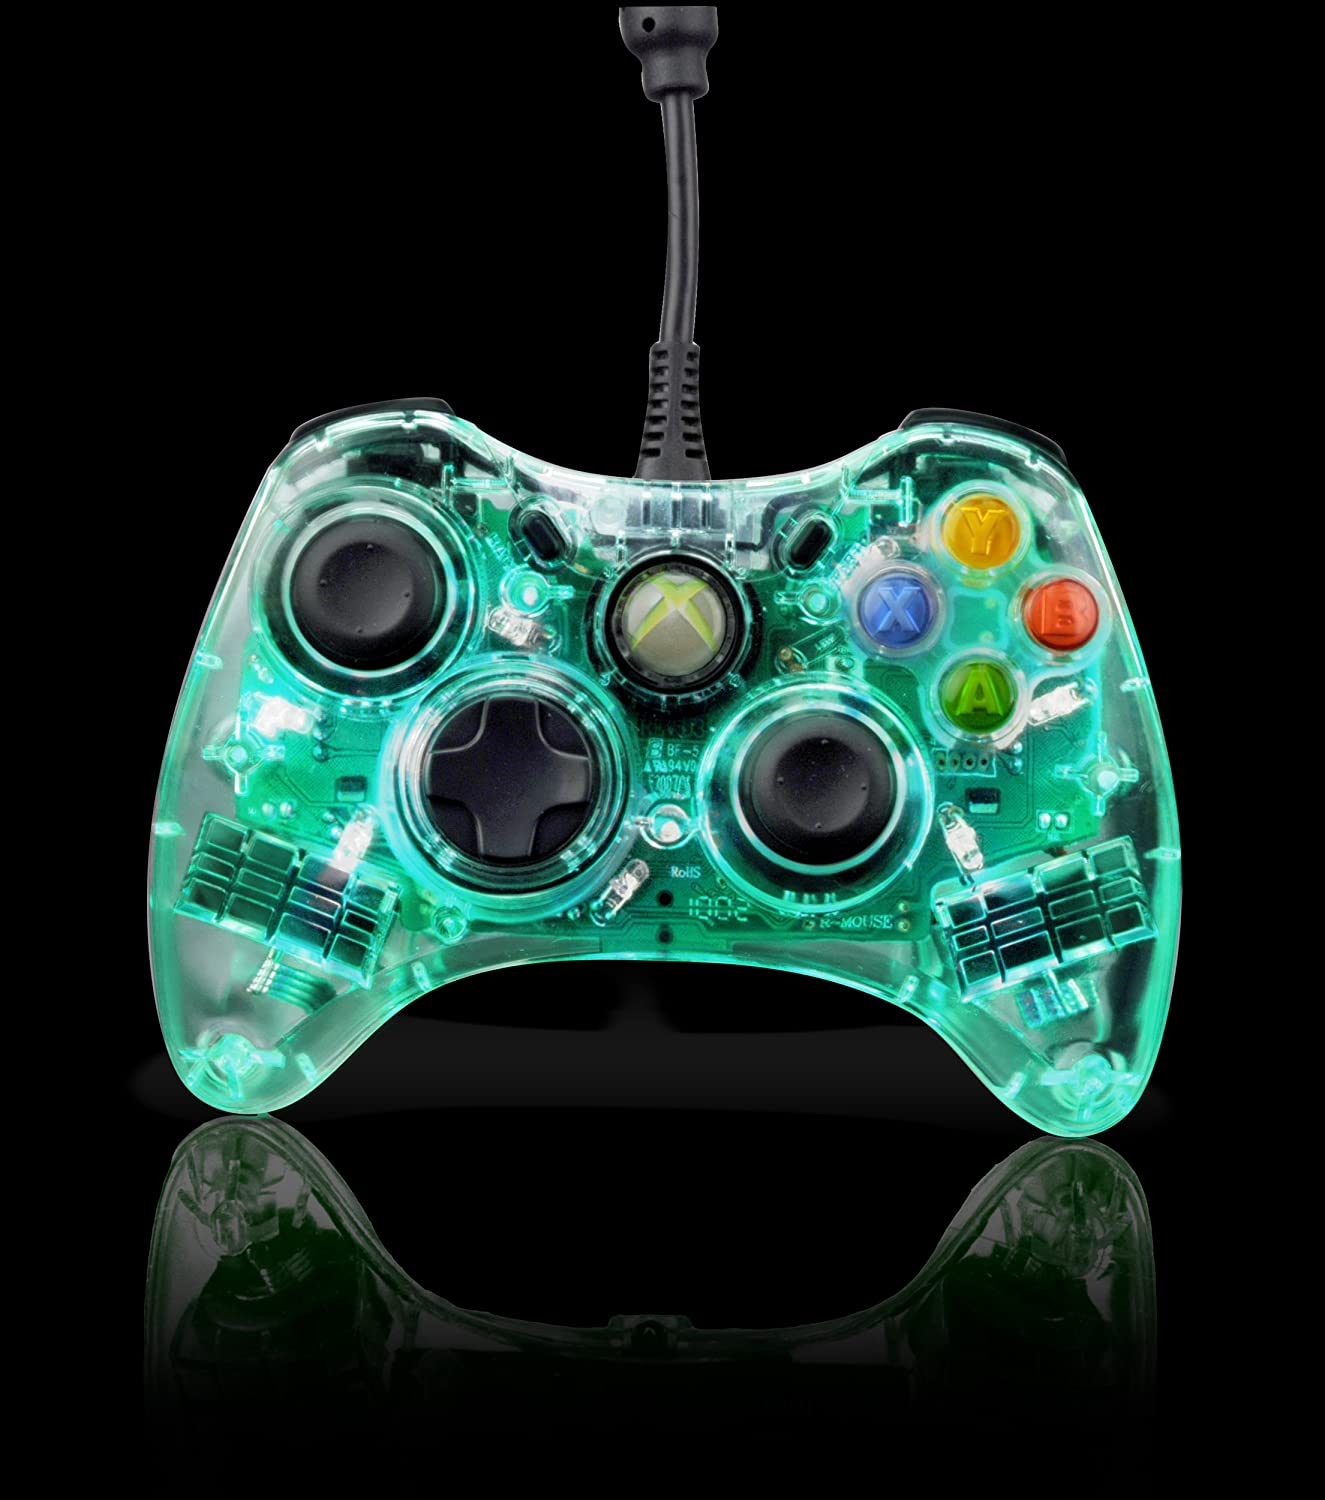 PDP Afterglow AX.1 Wired Controller Glows Green XBOX 360: Amazon.co ...